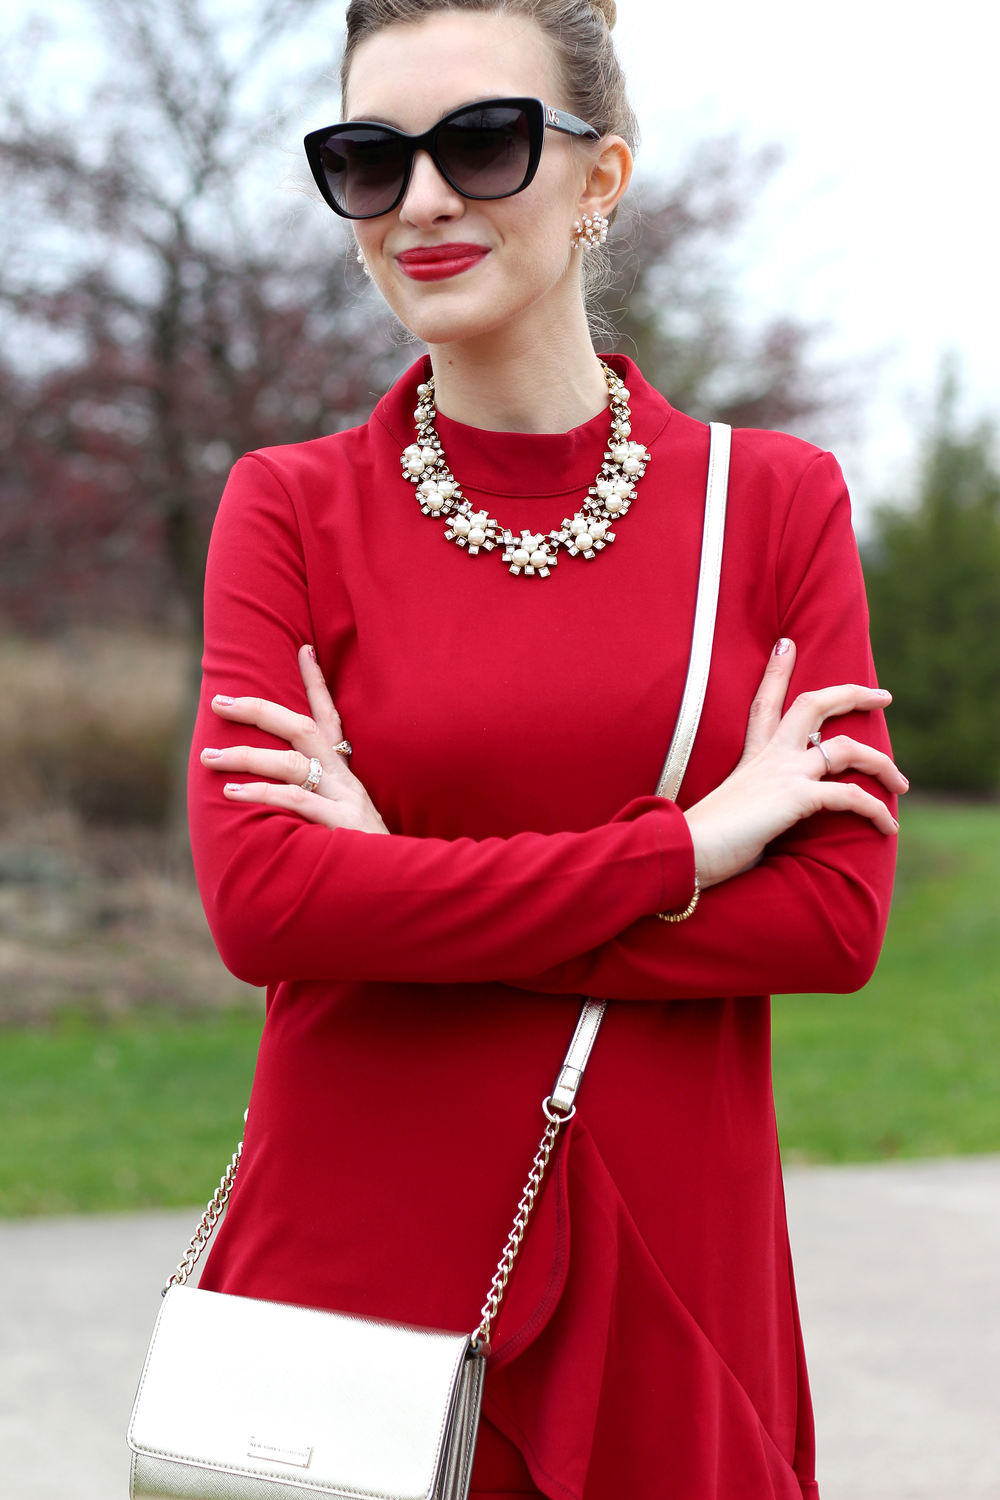 Red Dress & Statement Necklace- Enchanting Elegance